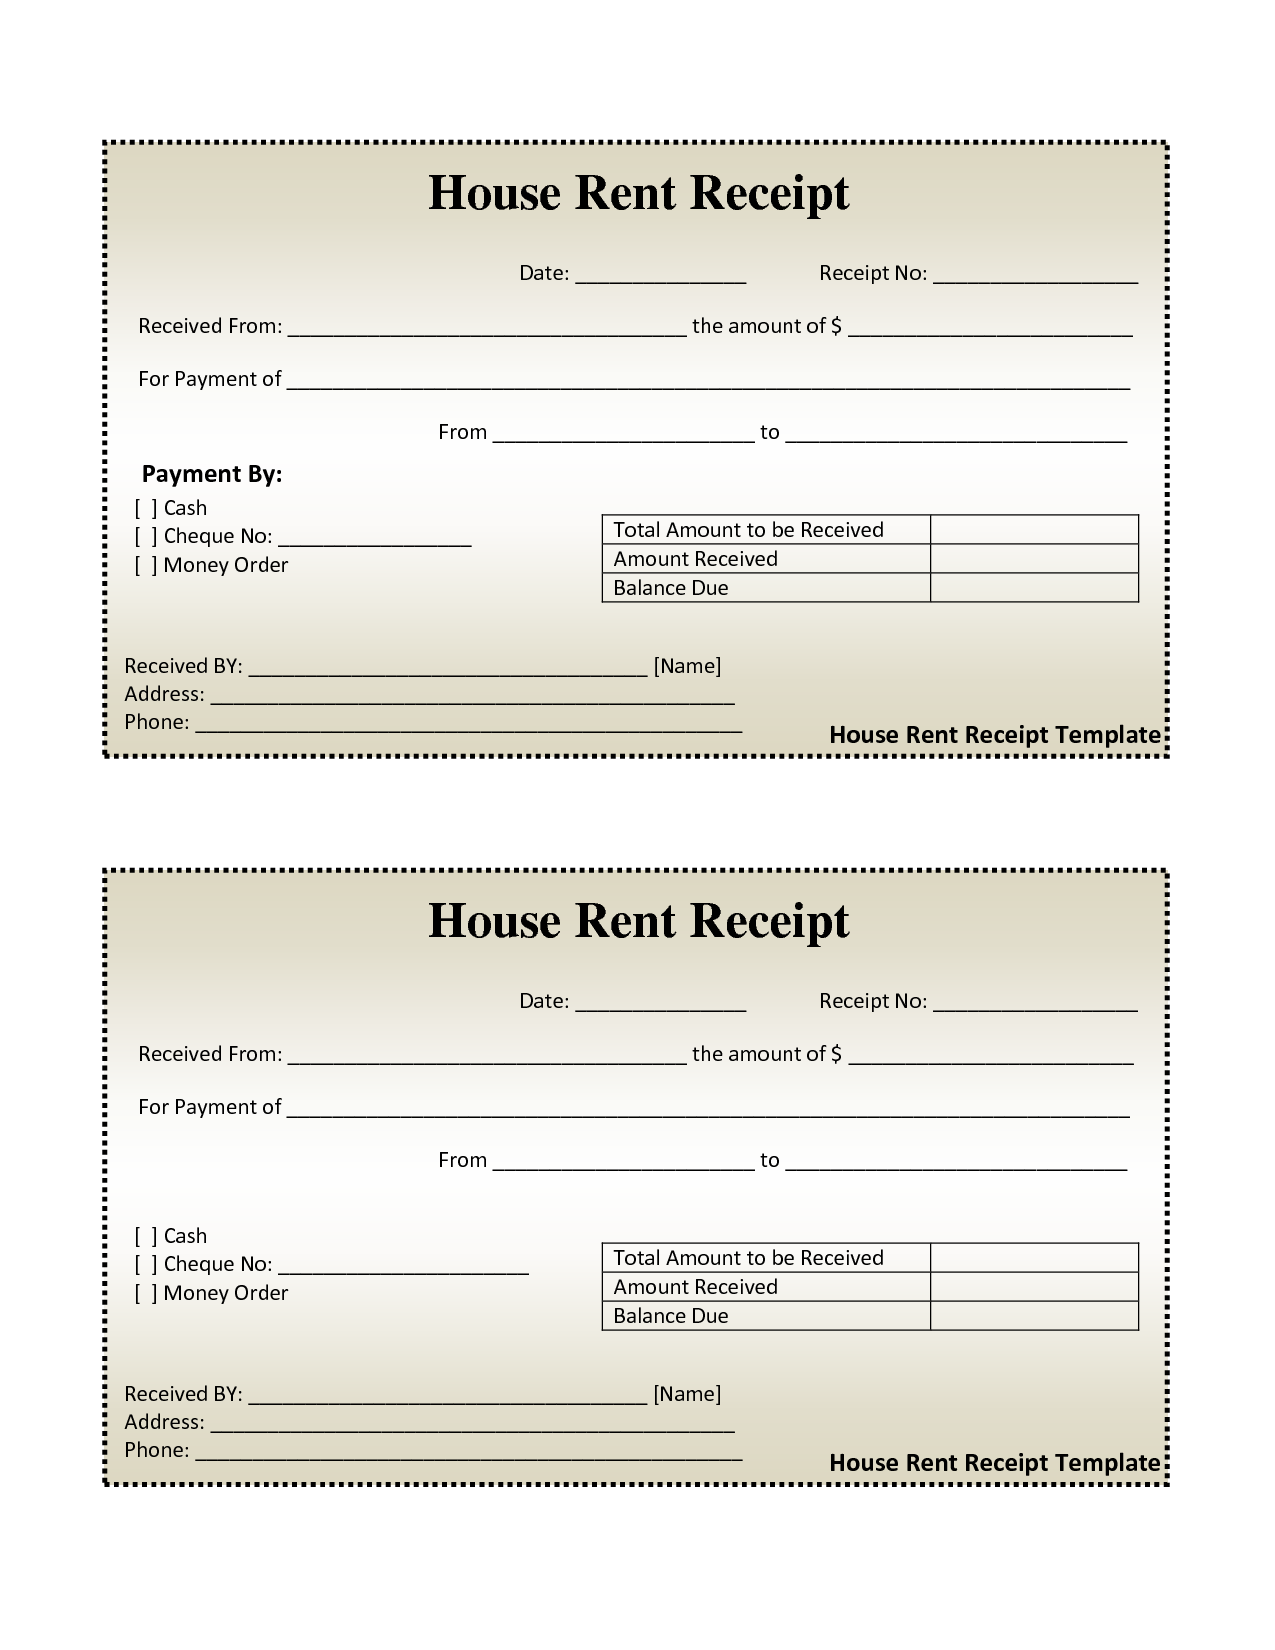 Perfect Free House Rental Invoice | House Rent Receipt Template   DOC Regarding House Rent Receipt Template